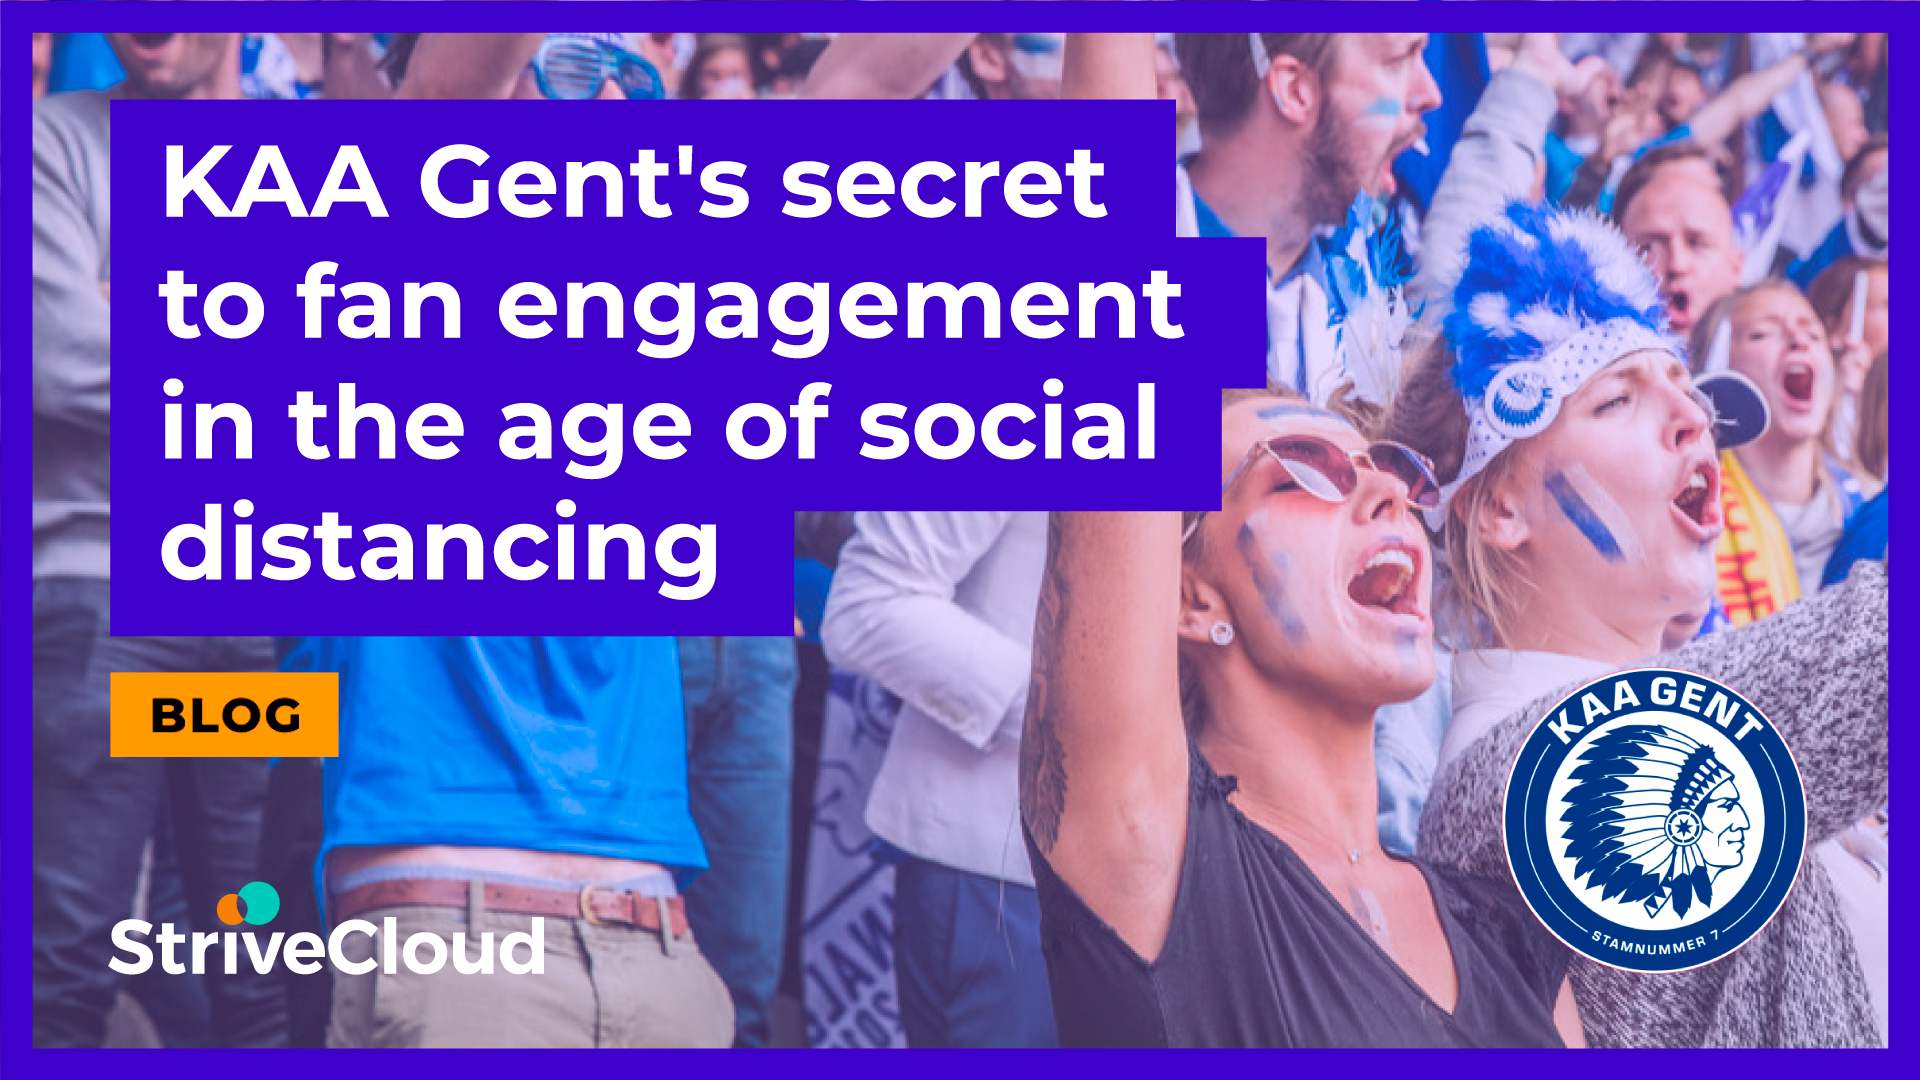 KAA Gent's secret to fan engagement in the age of social distancing